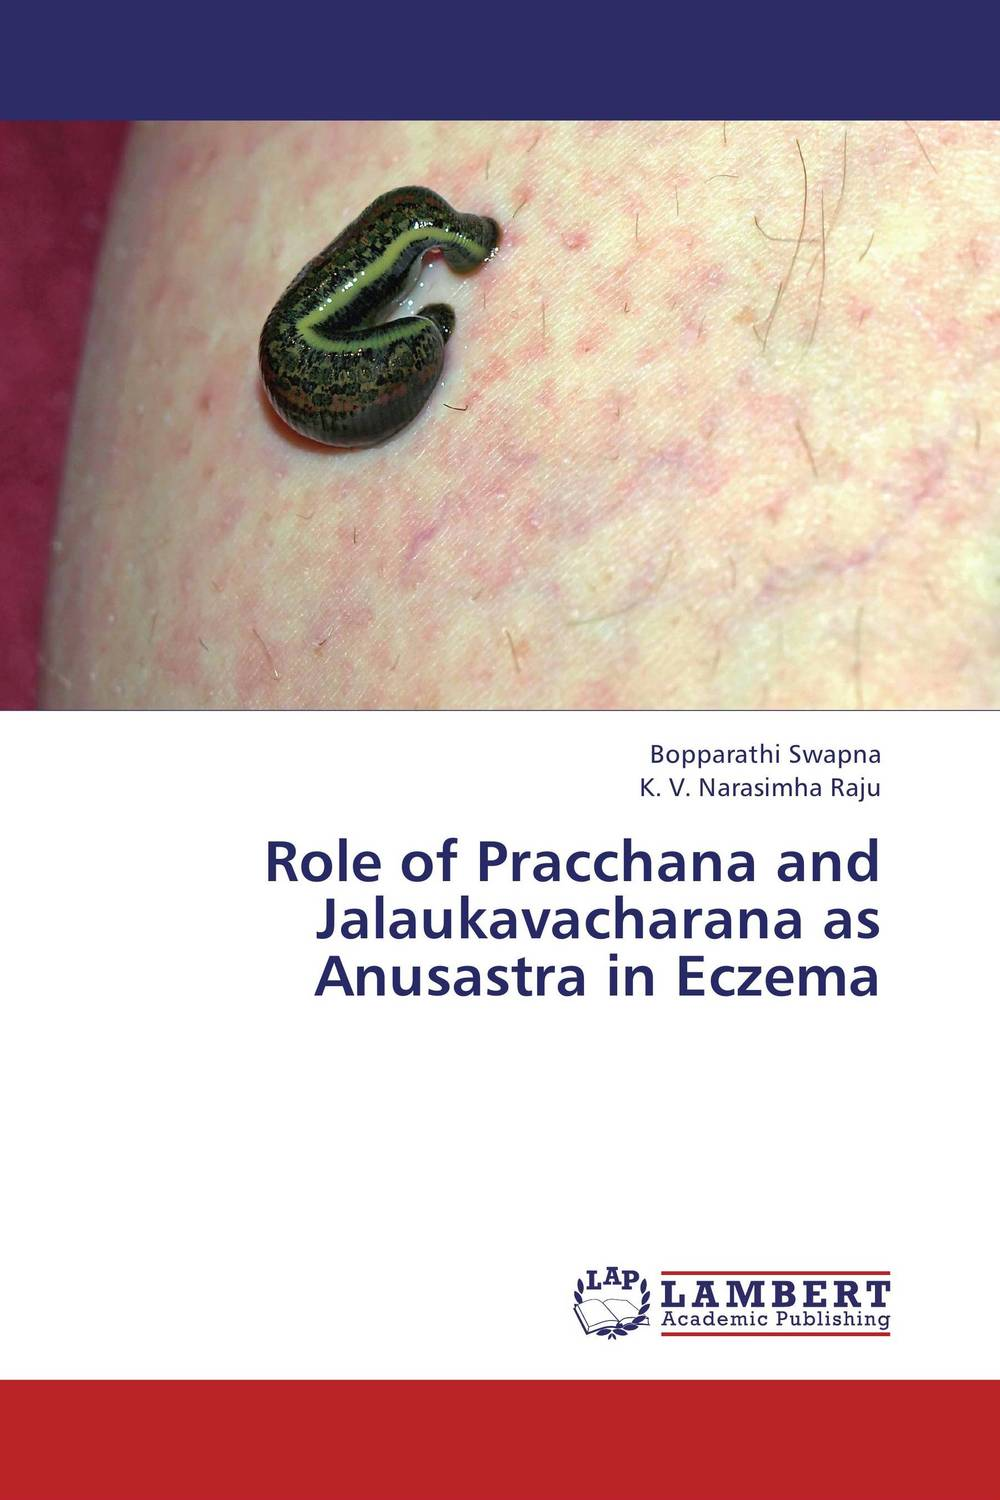 Role of Pracchana and Jalaukavacharana as Anusastra in Eczema the role of evaluation as a mechanism for advancing principal practice